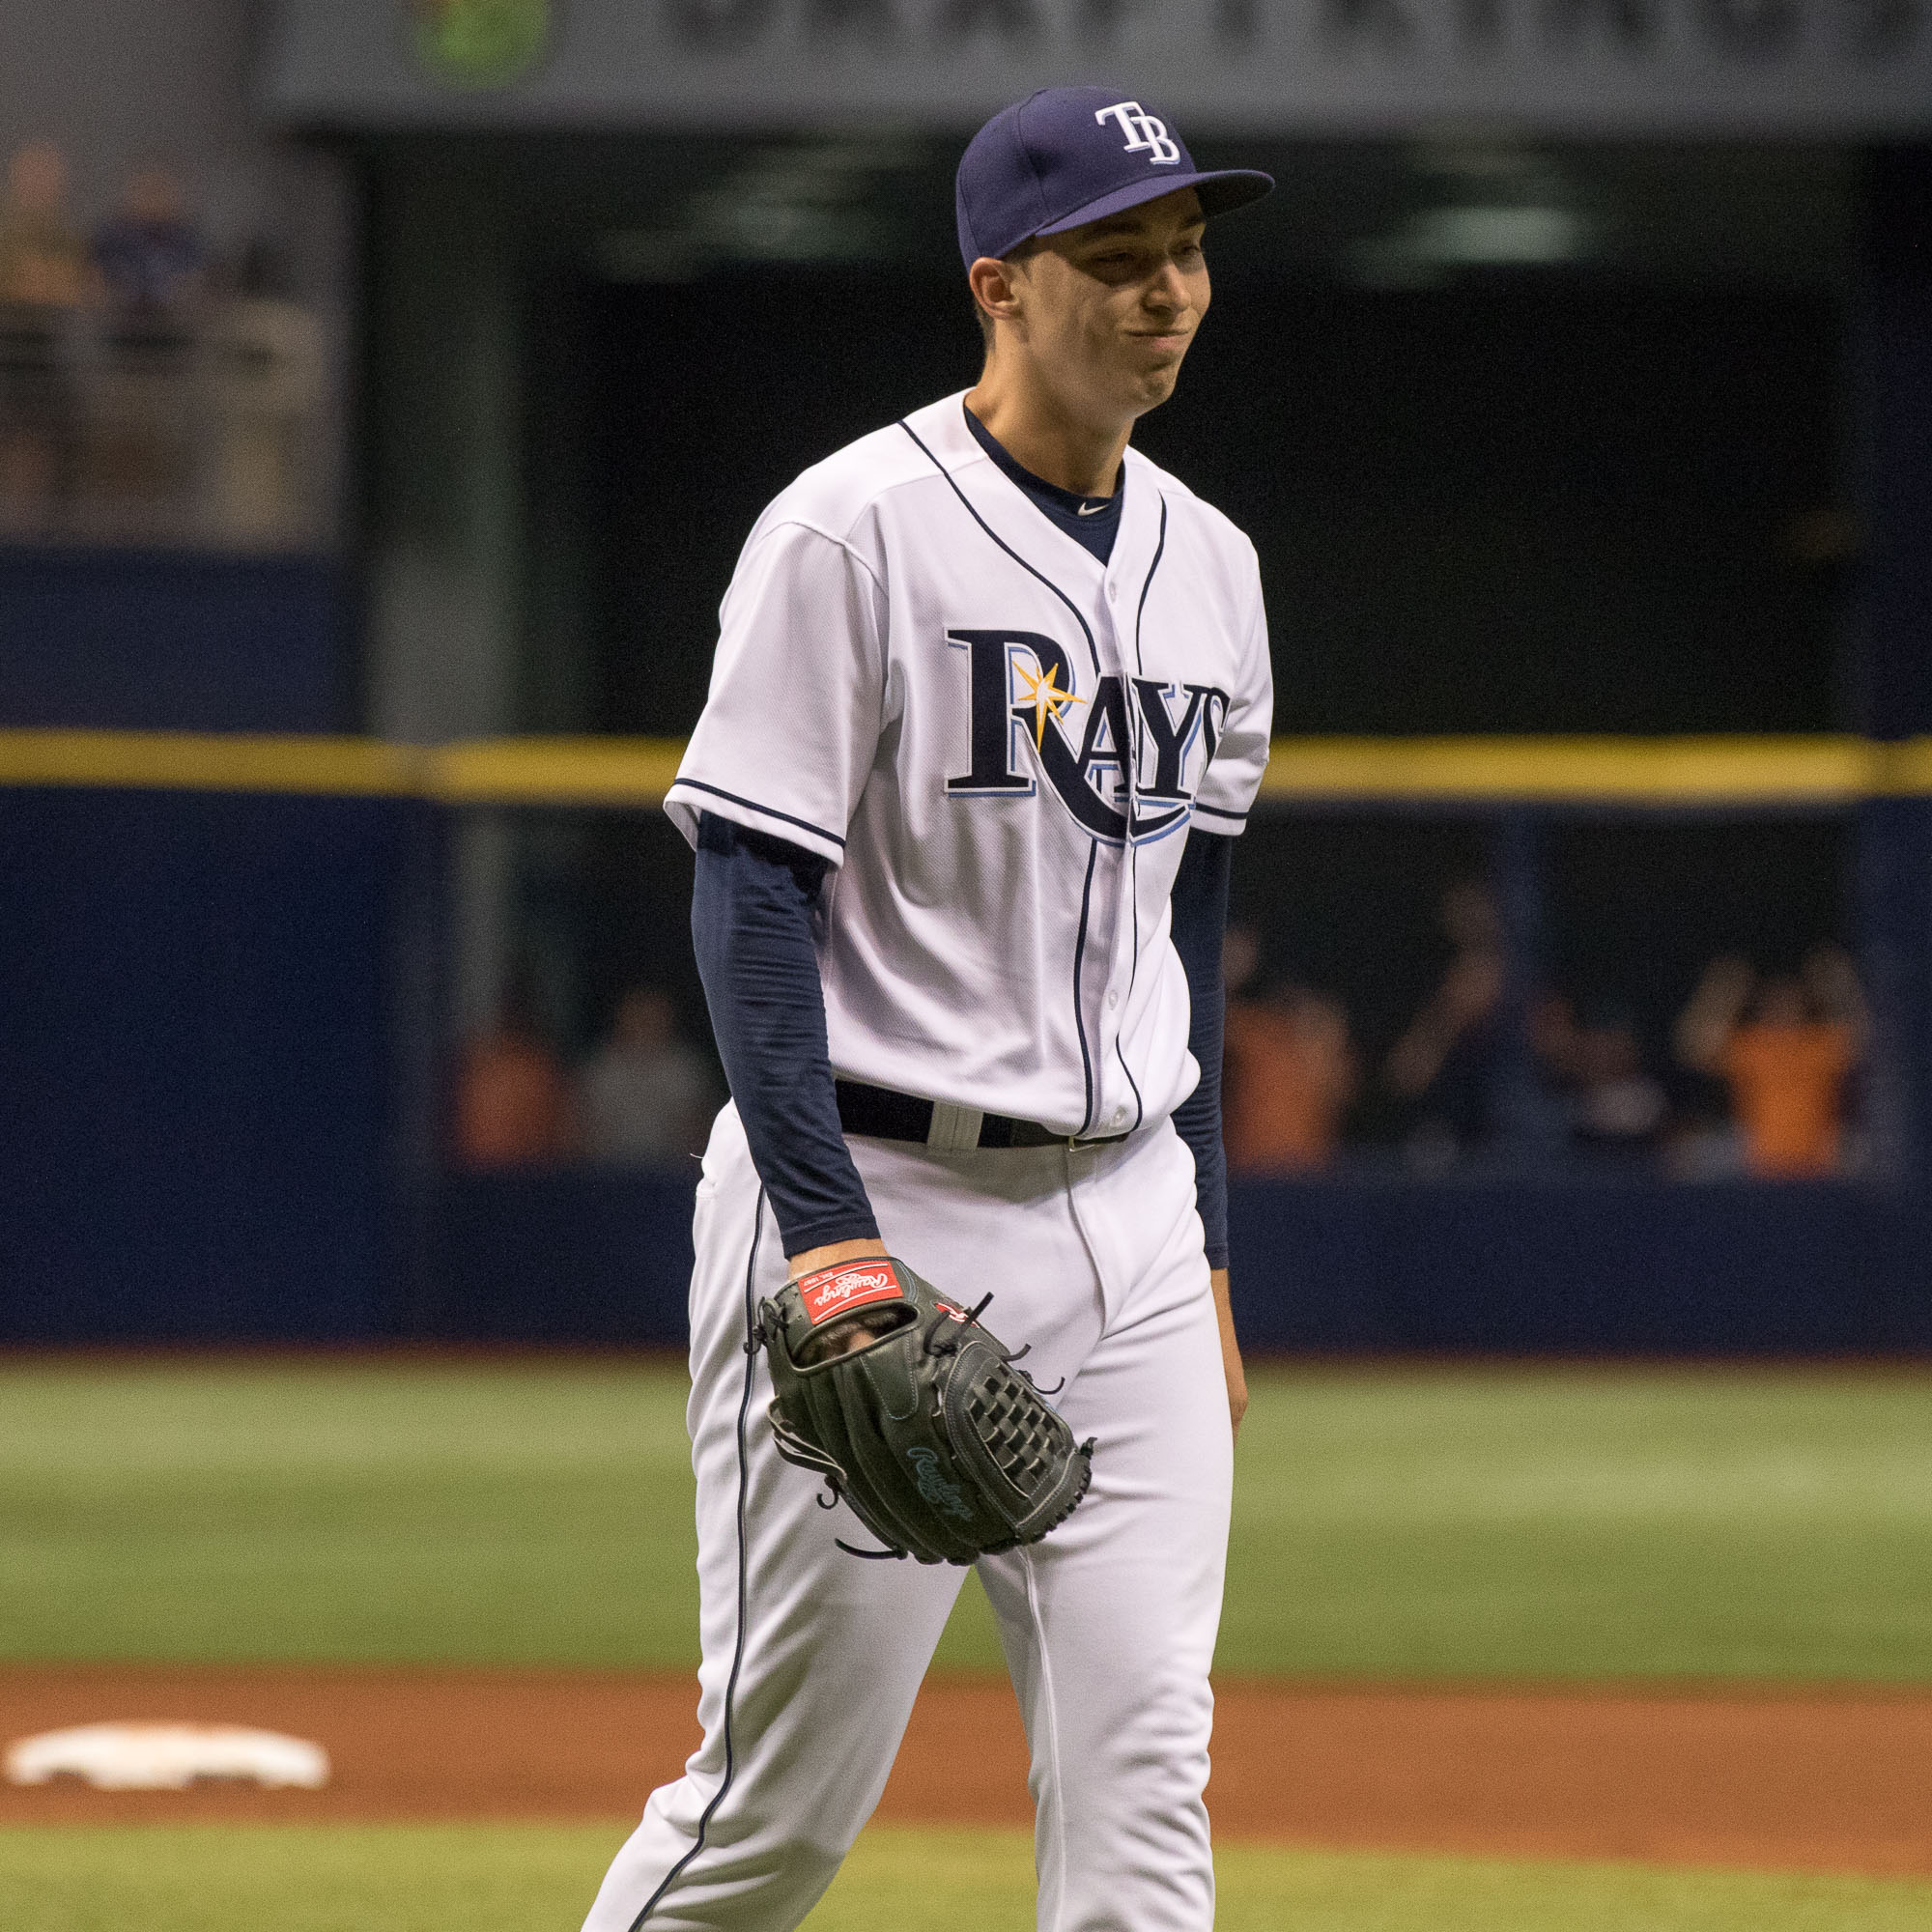 Blake Snell had his best start as a Ray but lost./STEVEN MUNCIE